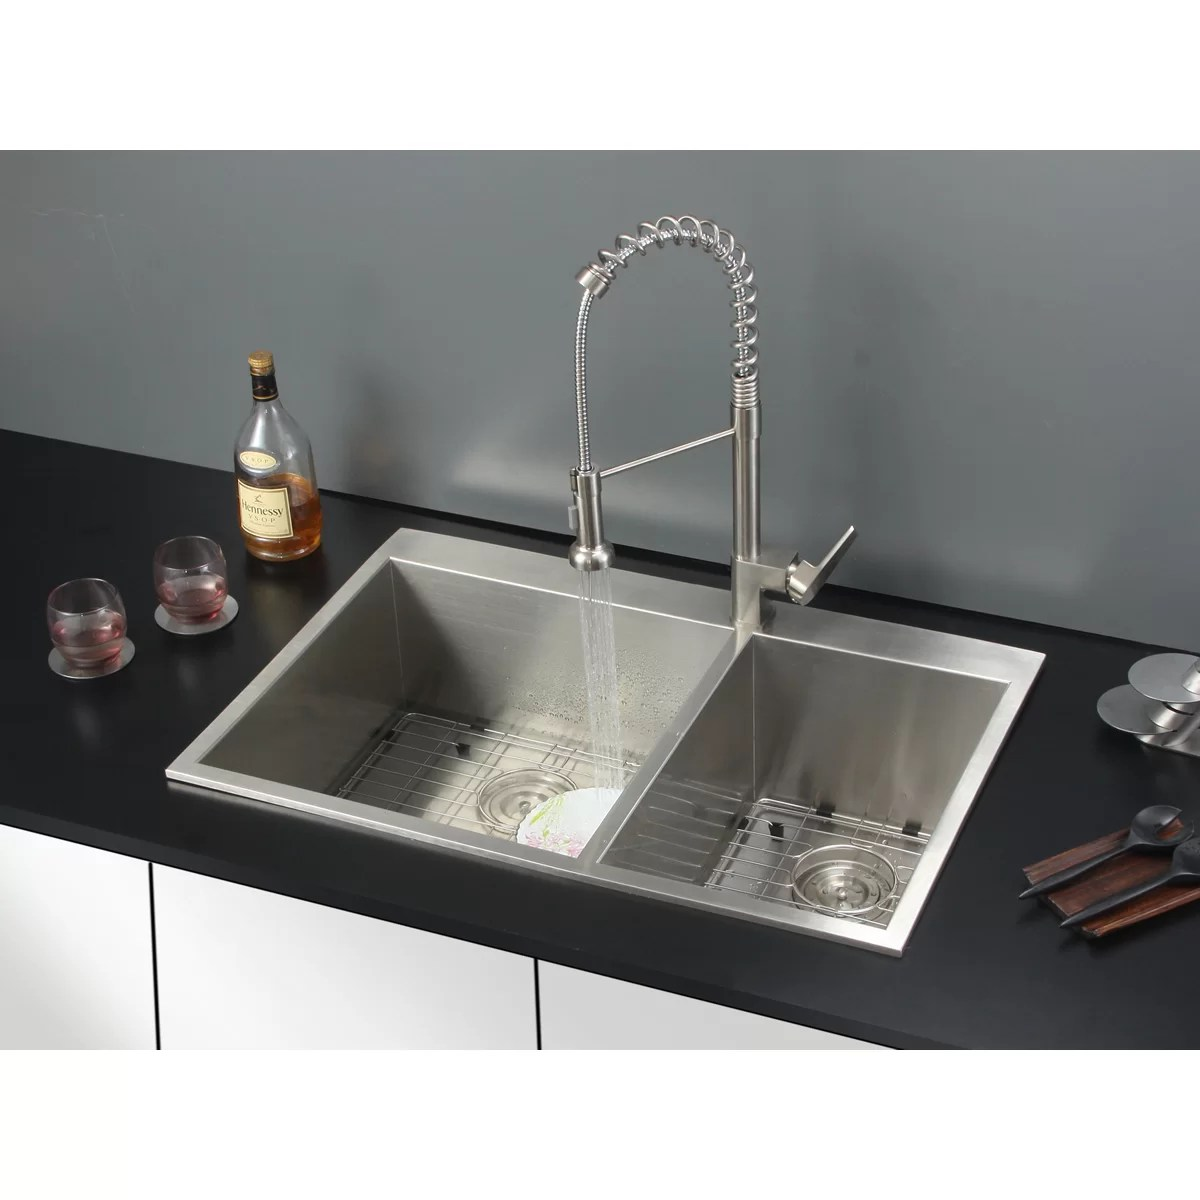 drop in kitchen sinks updated kitchens ruvati 33 quot x 22 sink with faucet